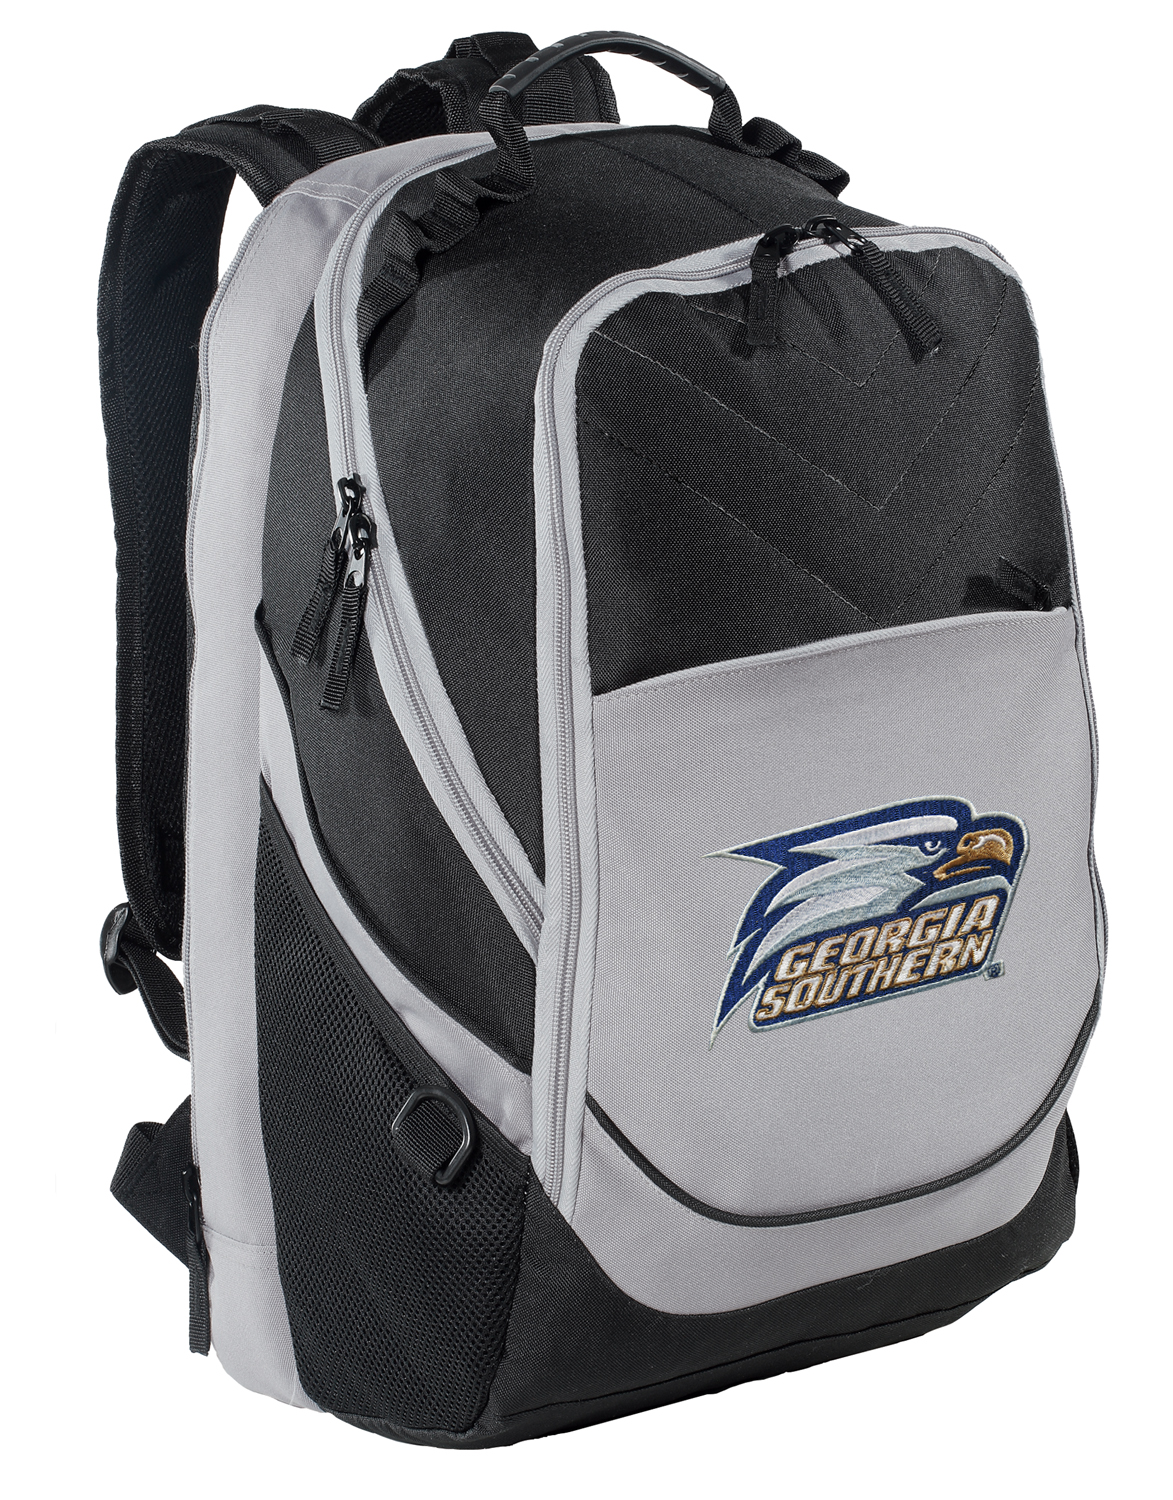 Broad Bay Georgia Southern Laptop Bag Georgia Southern Eagles Computer Bag or Messenger Bag